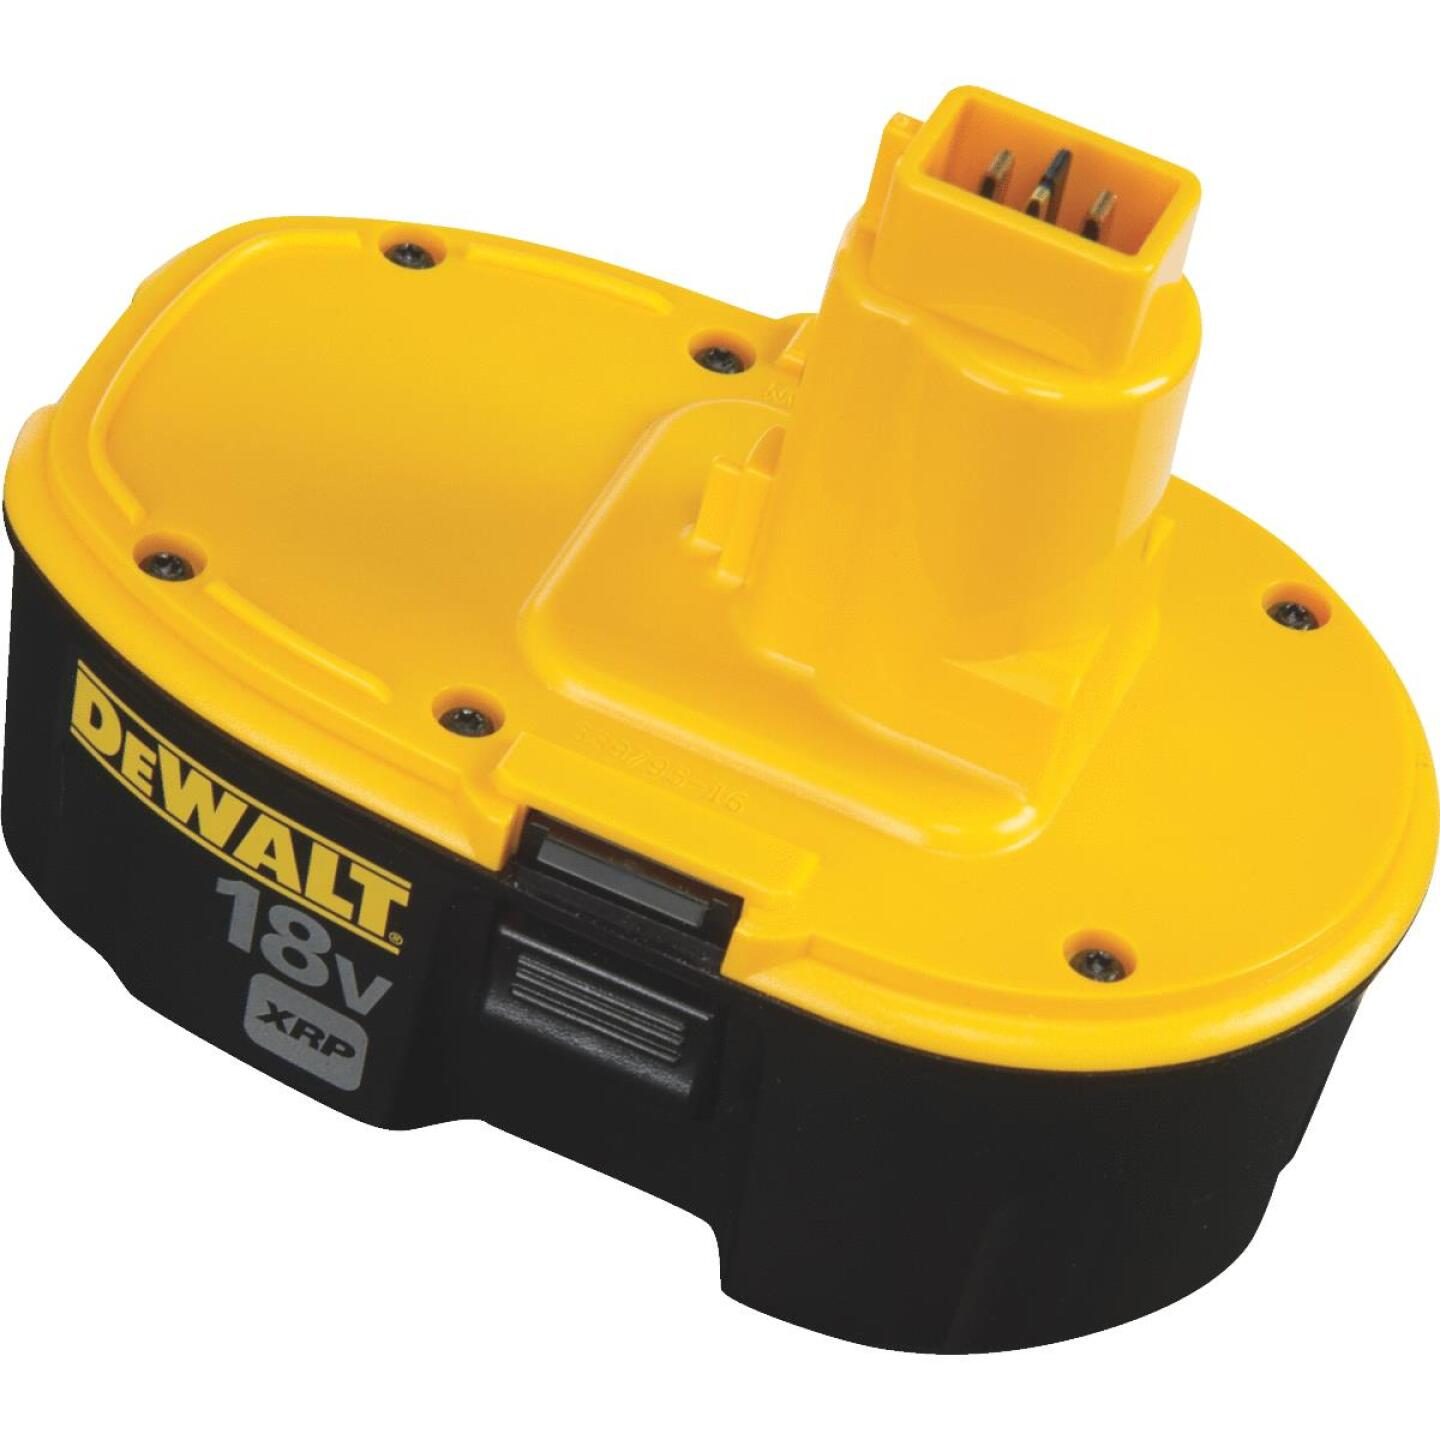 DeWalt 18 Volt XRP Nickel-Cadmium 2.4 Ah Tool Battery Image 3